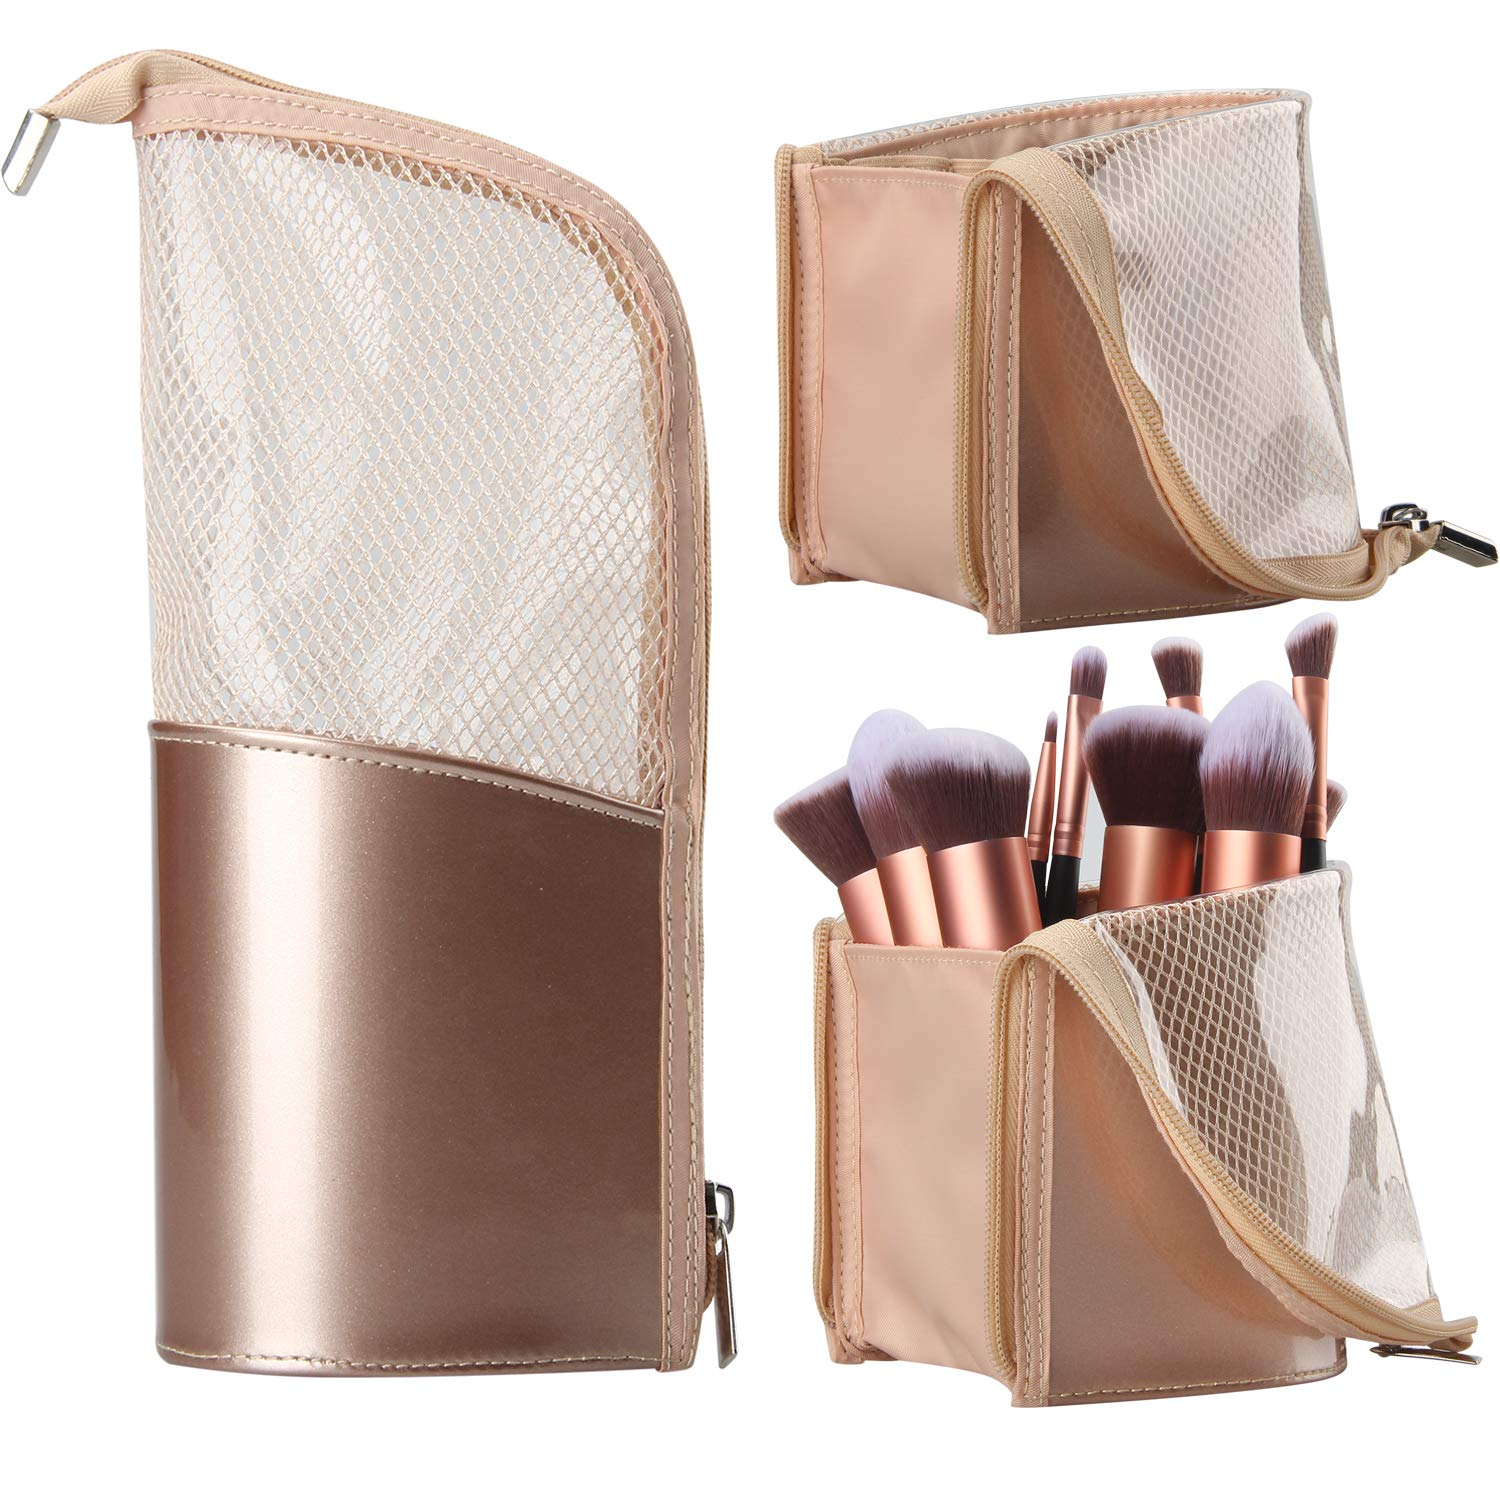 Travel Makeup Brush Bag, Portable Rose Gold Makeup Brush Holder Organizer Bag Waterproof Stand-Up Makeup Brush Pouch,Professional Artist Makeup Brush Case